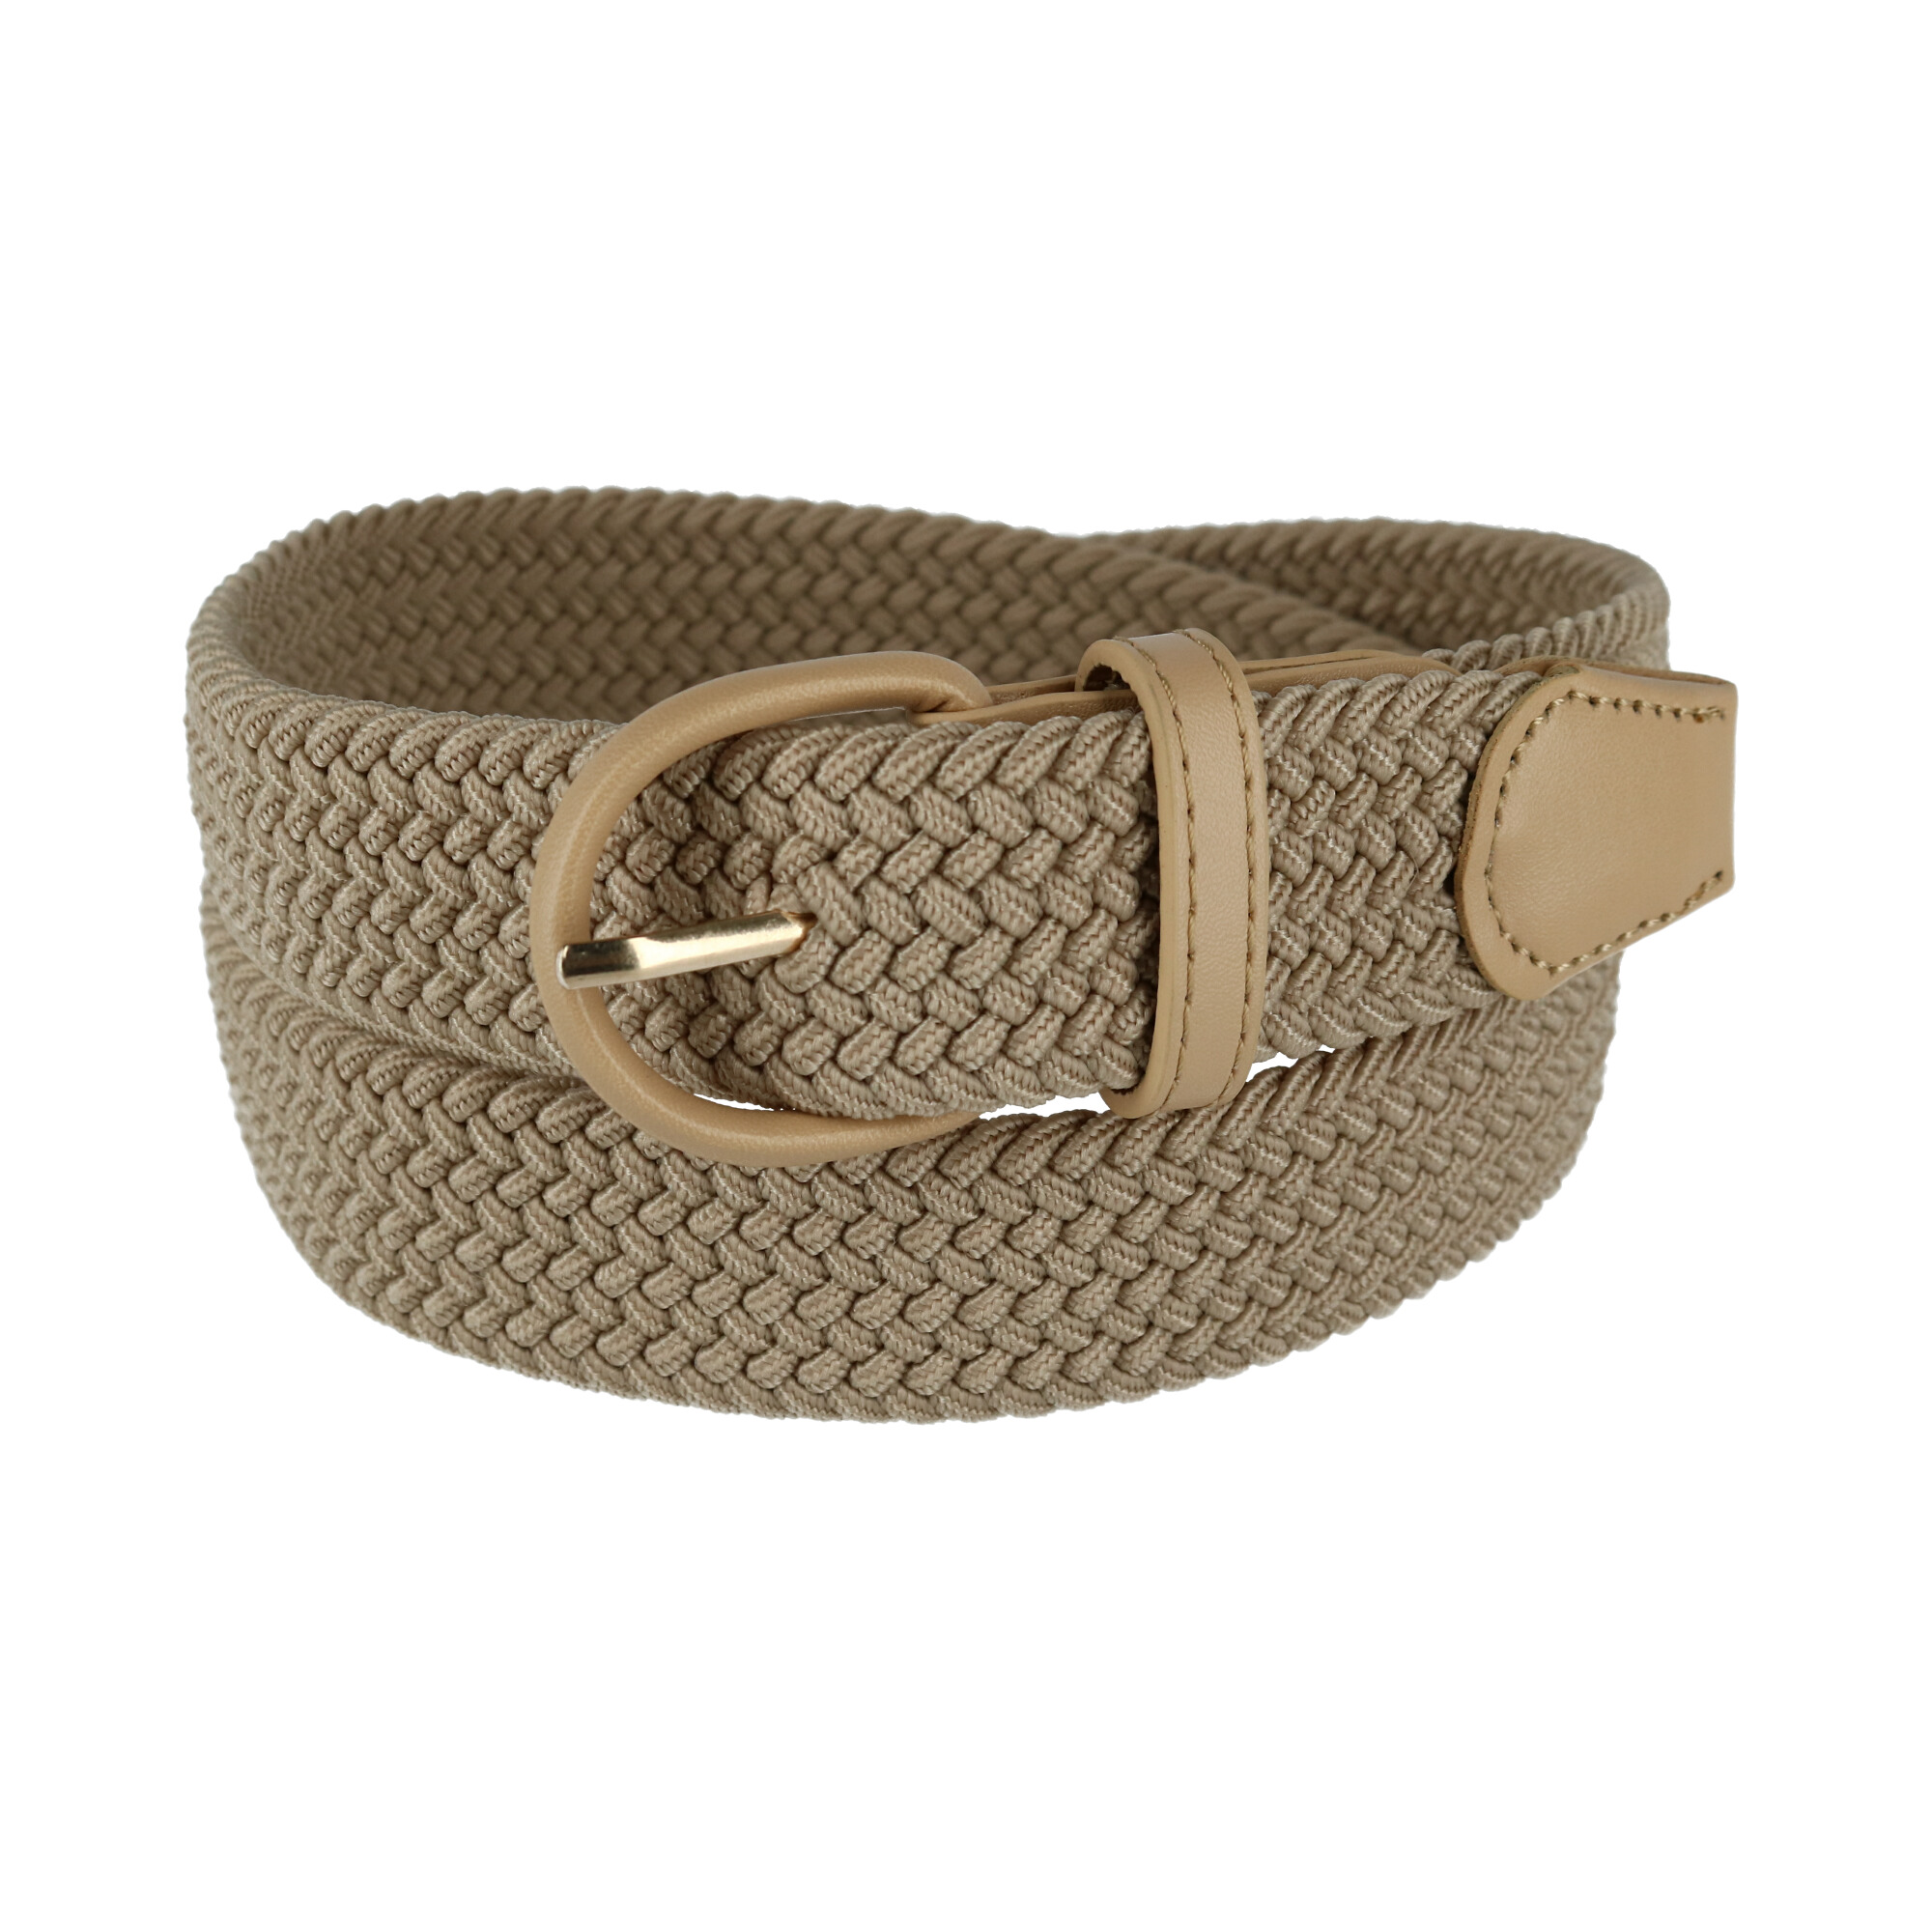 CTM_Men's_Elastic_Braided_Belt_with_Covered_Buckle_(Big_&_Tall